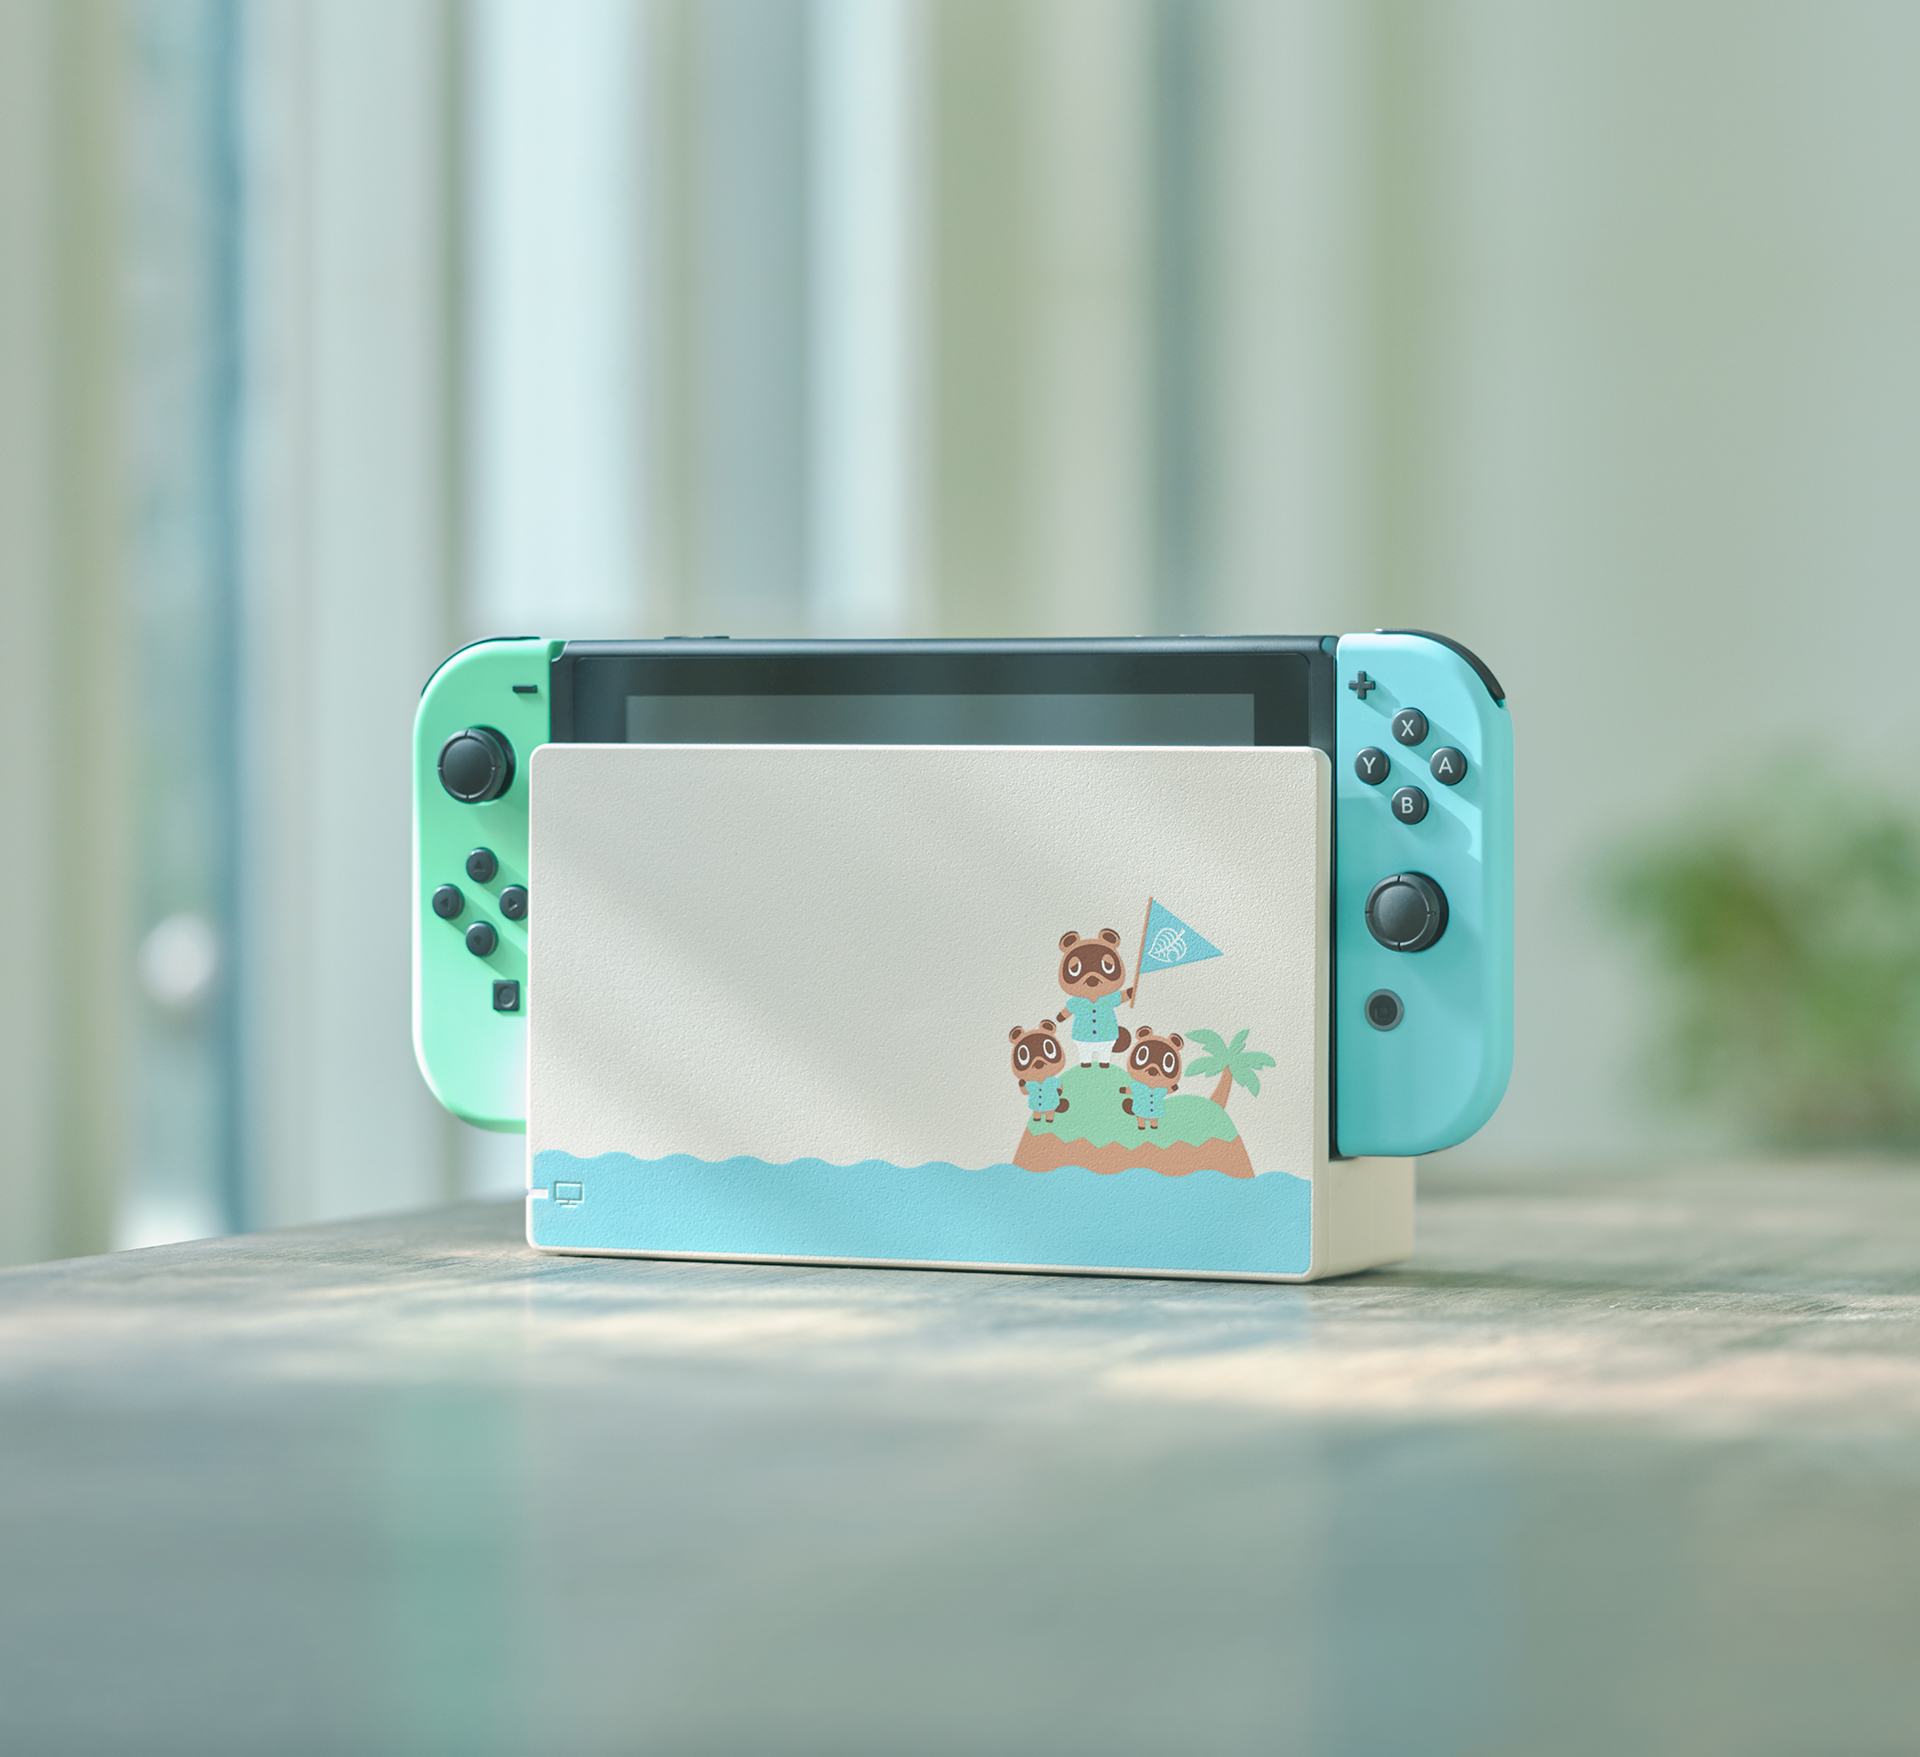 The limited edition Animal Crossing Nintendo Switch is now available from Walmart - VG247